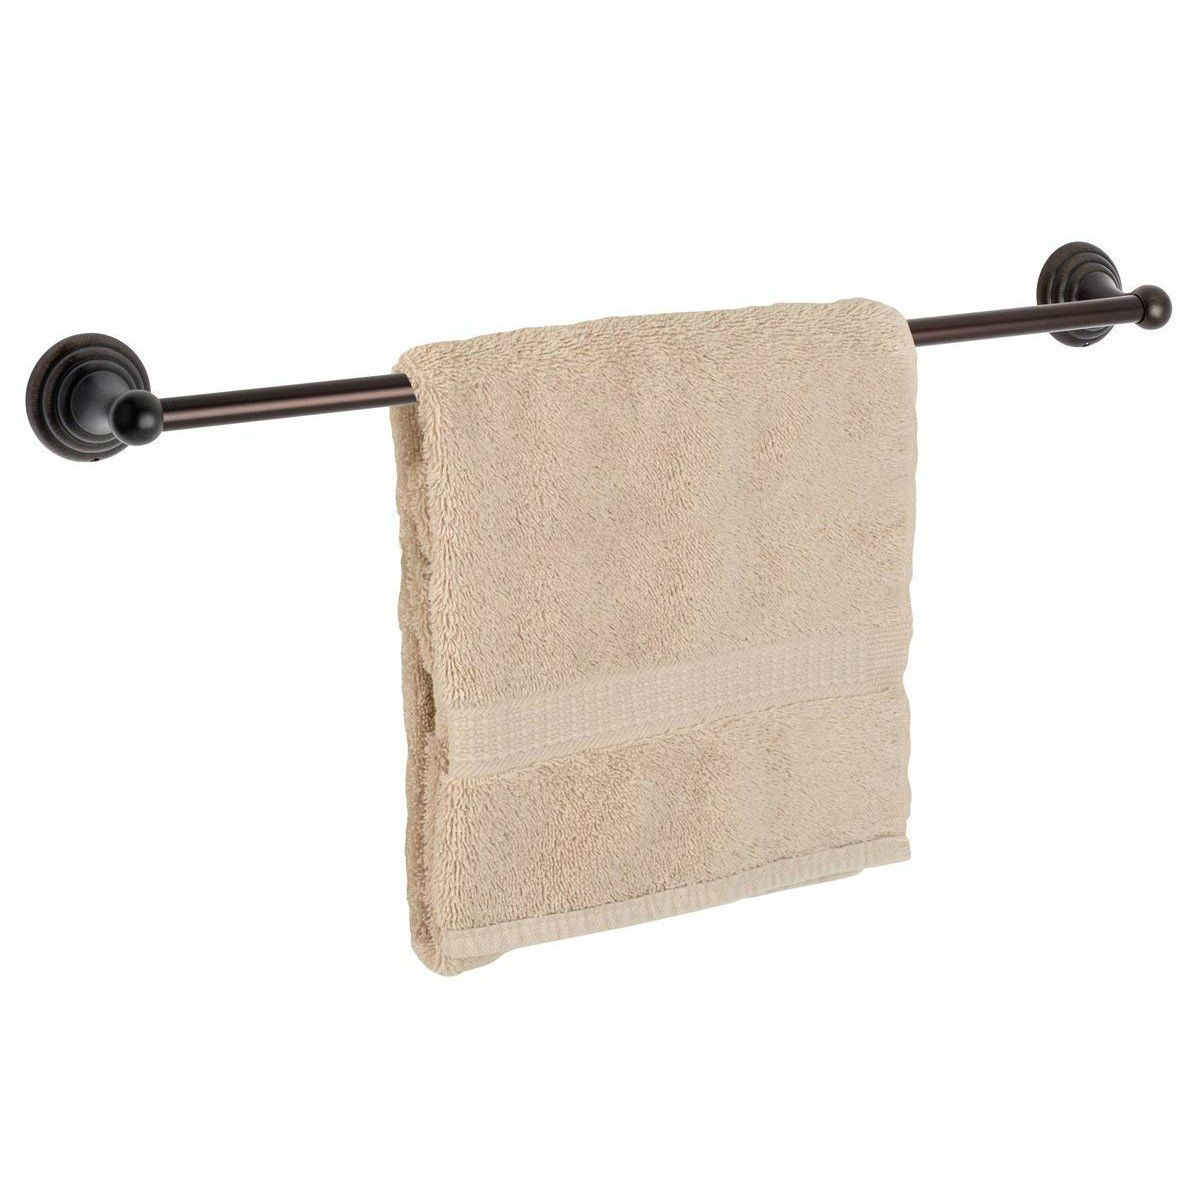 "Dynasty Hardware Bel Air 7530-ORB Oil Rubbed Bronze 30"" Single Towel Bar"